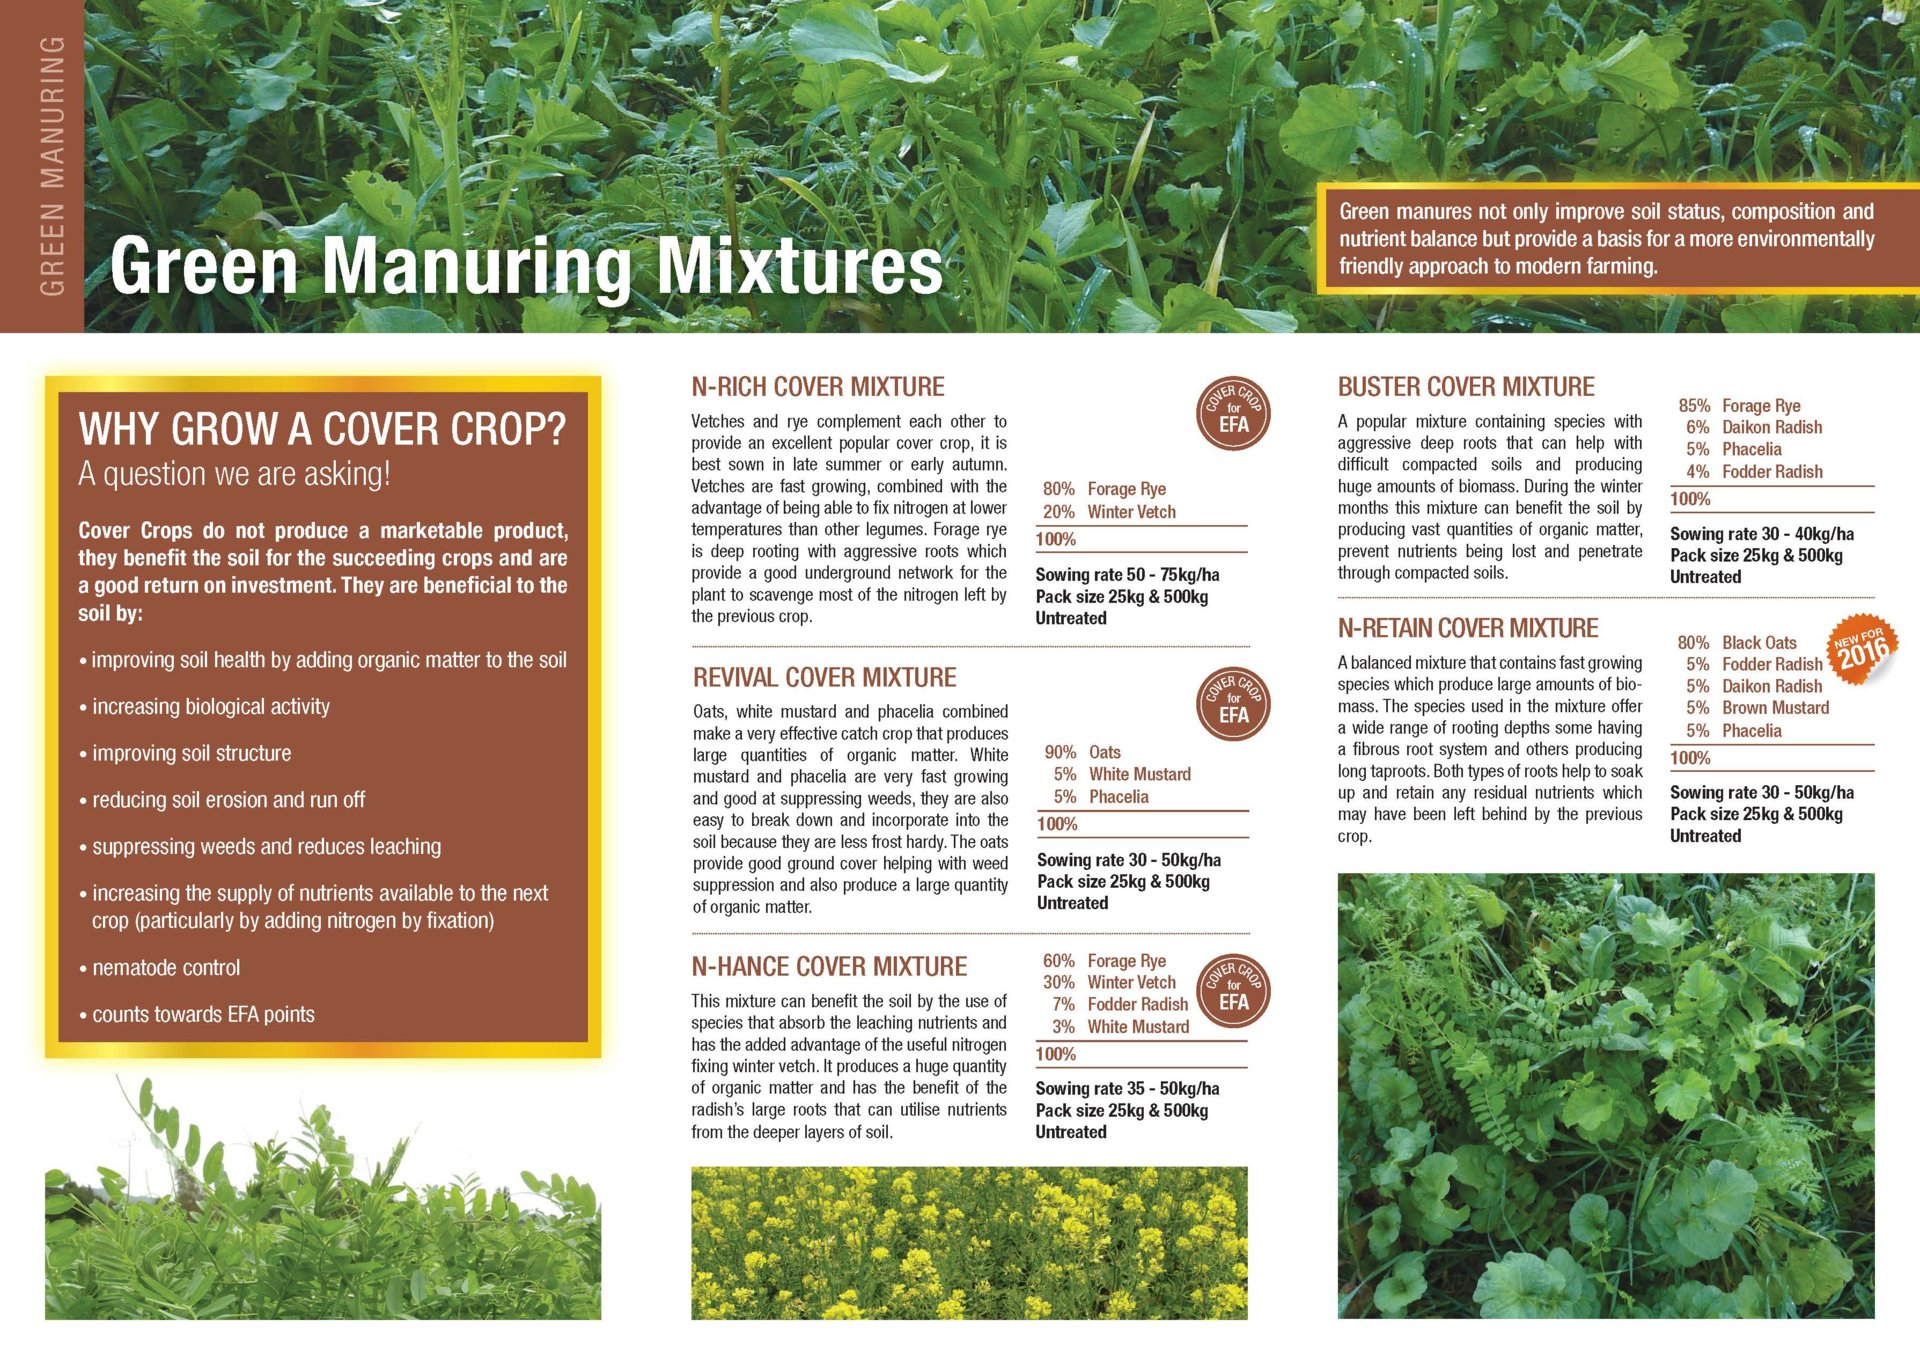 Your+Countryside+_Cover+Crops_+2016_Page_2.jpg